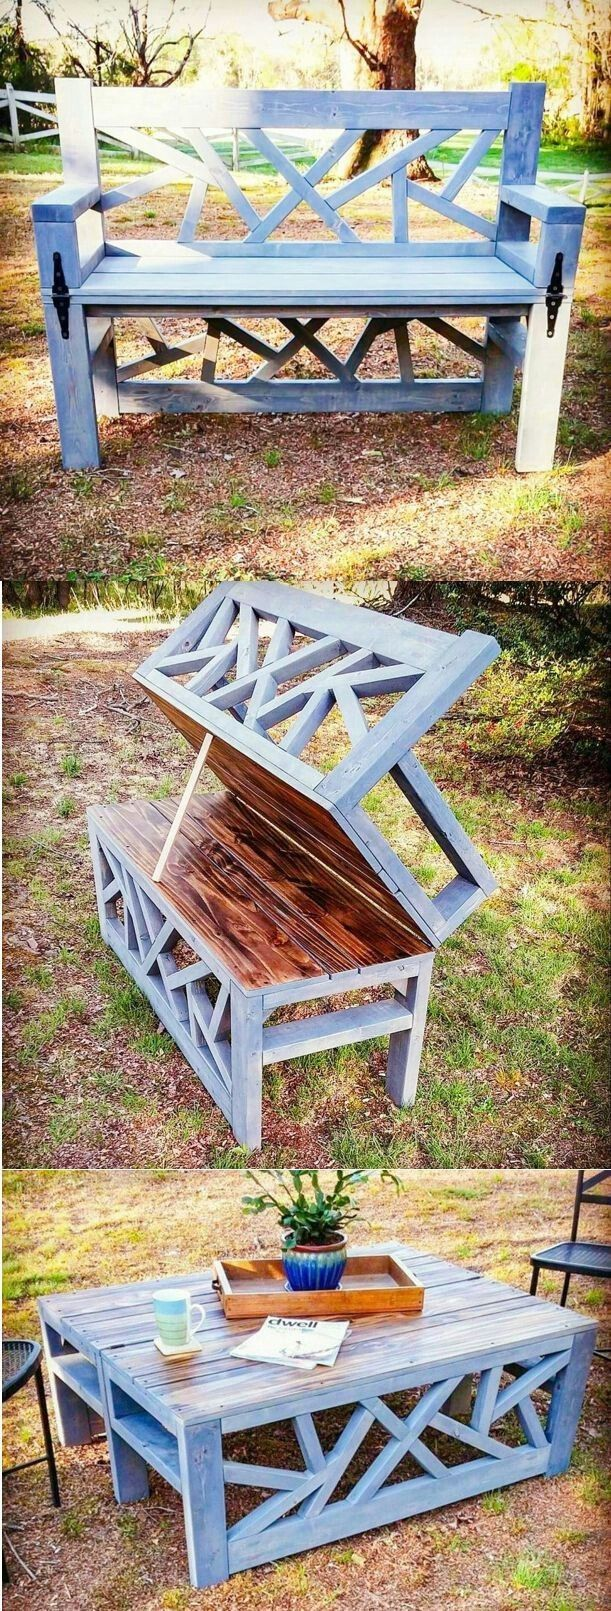 Bench into table. This looks so interesting. | Ideen | Pinterest ...